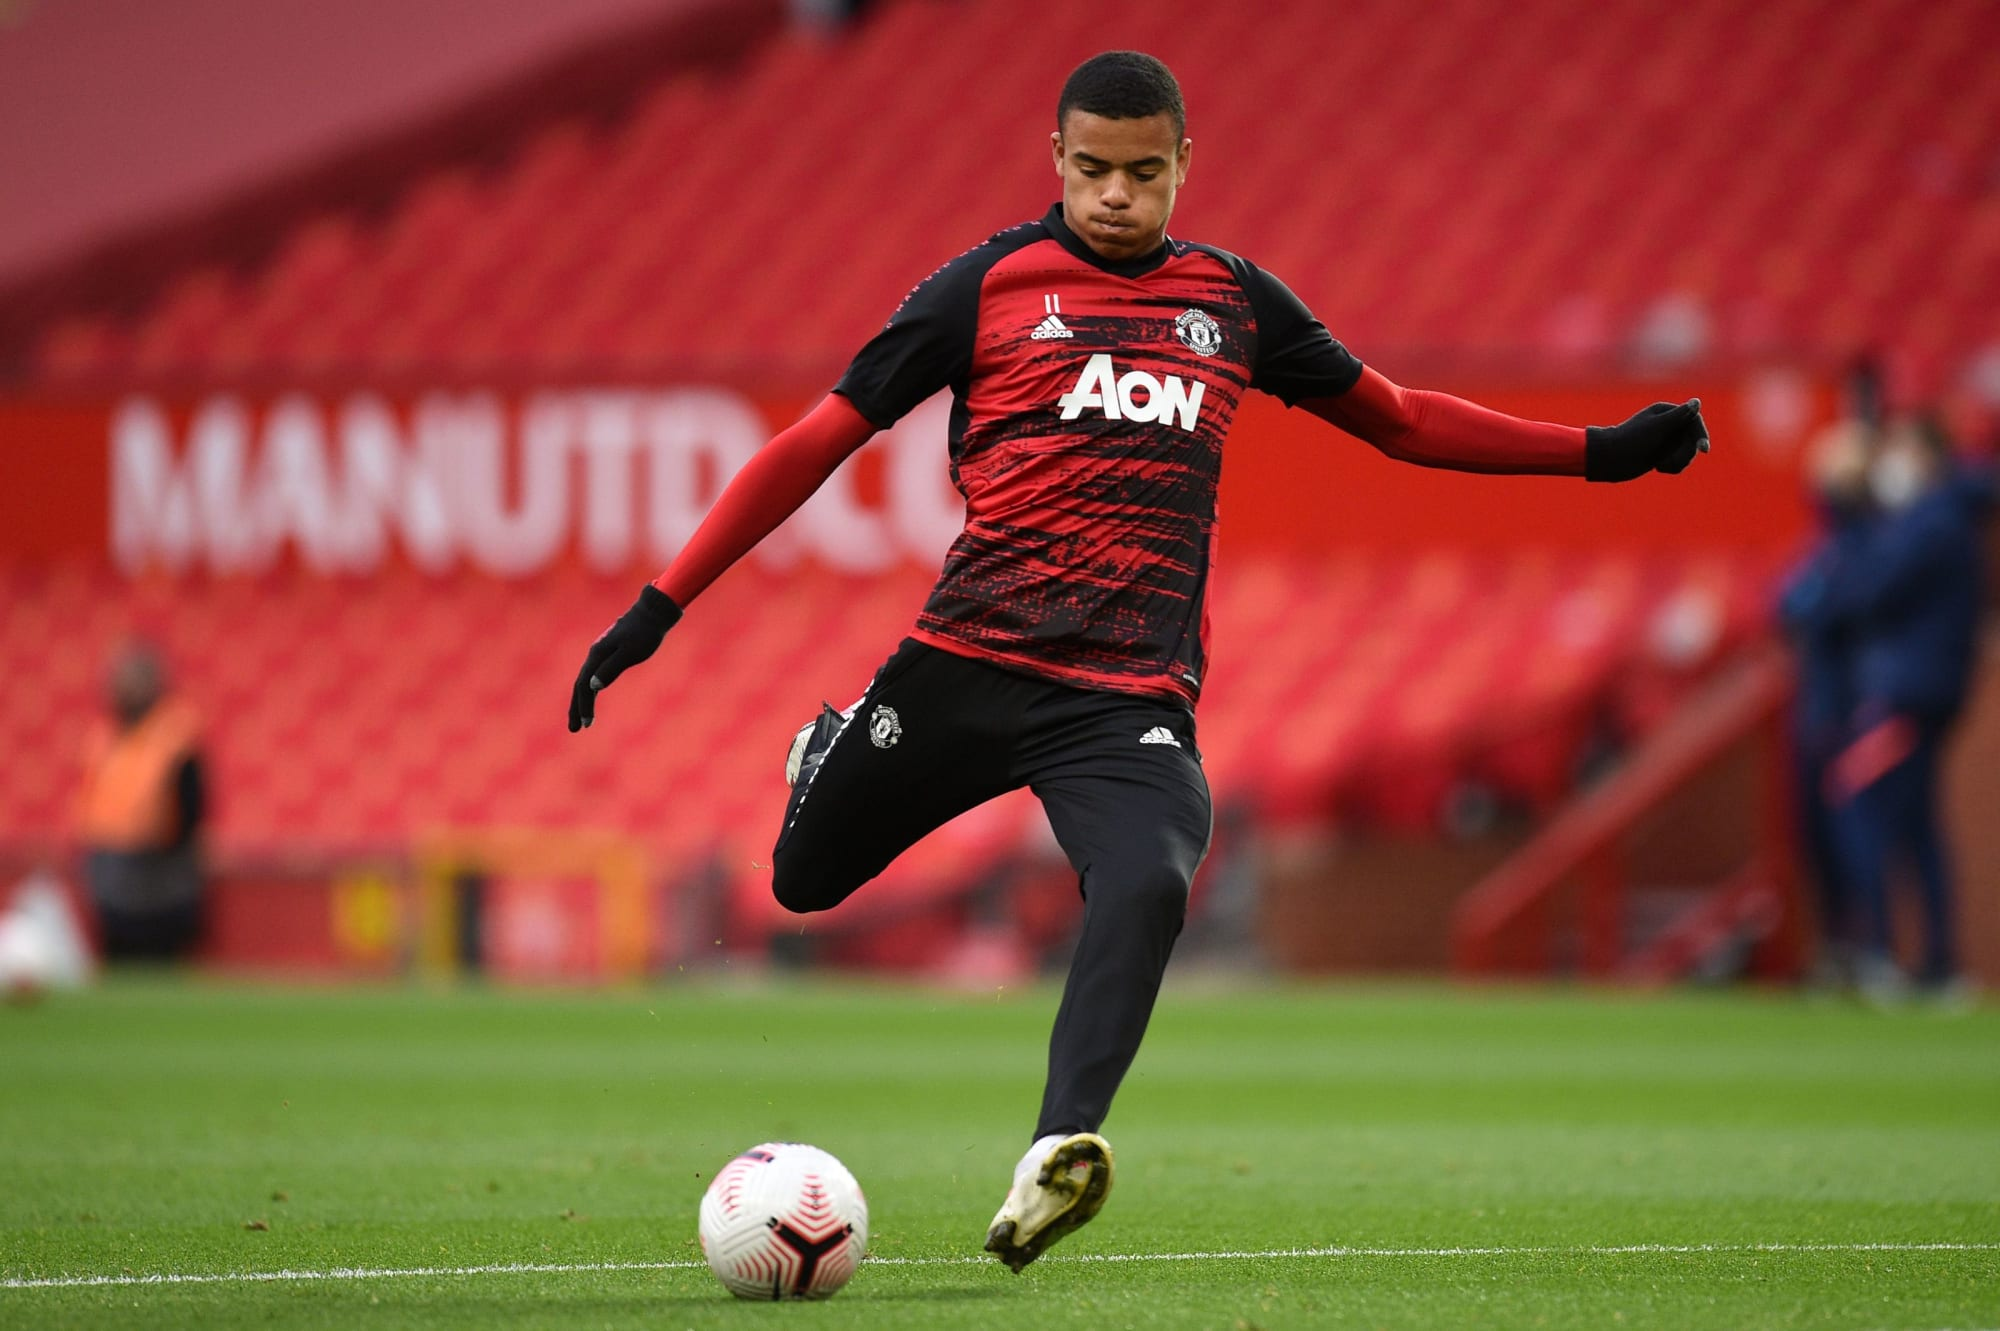 Manchester United youngster has been warned by the club